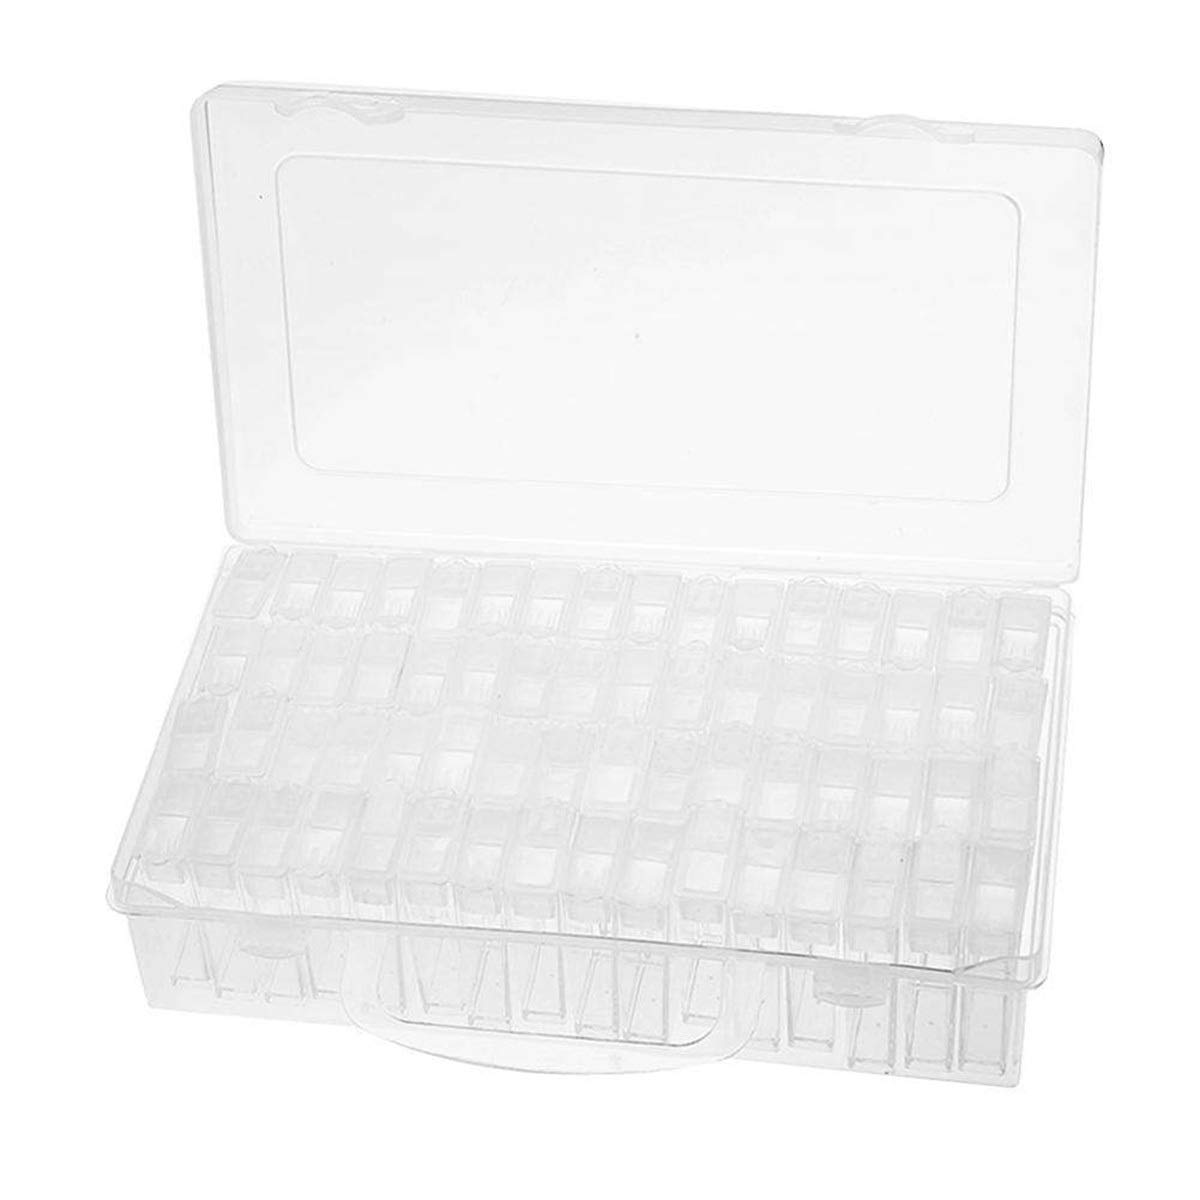 Yesbaby 64 Grids Diamond Embroidery Box Transparent Plastic Dismountable Storage Box Embroidery Accessories Container Diamond Painting Holder for DIY Craft